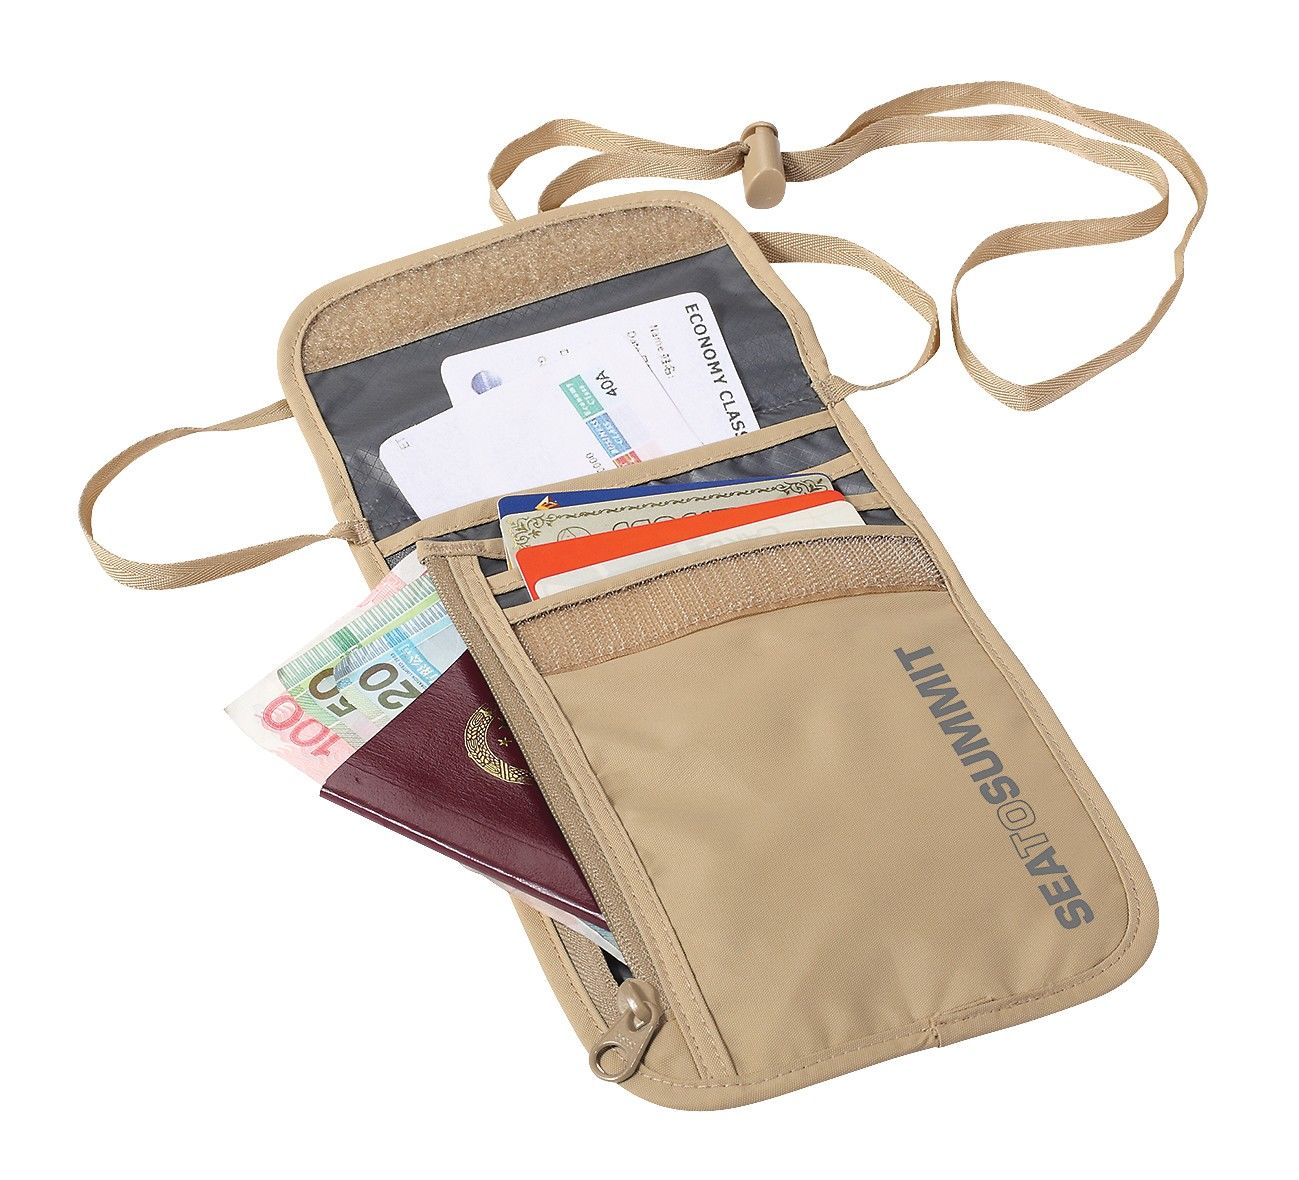 Sea to Summit Neck Wallet 5 Braun, One Size -Farbe Sand, One Size